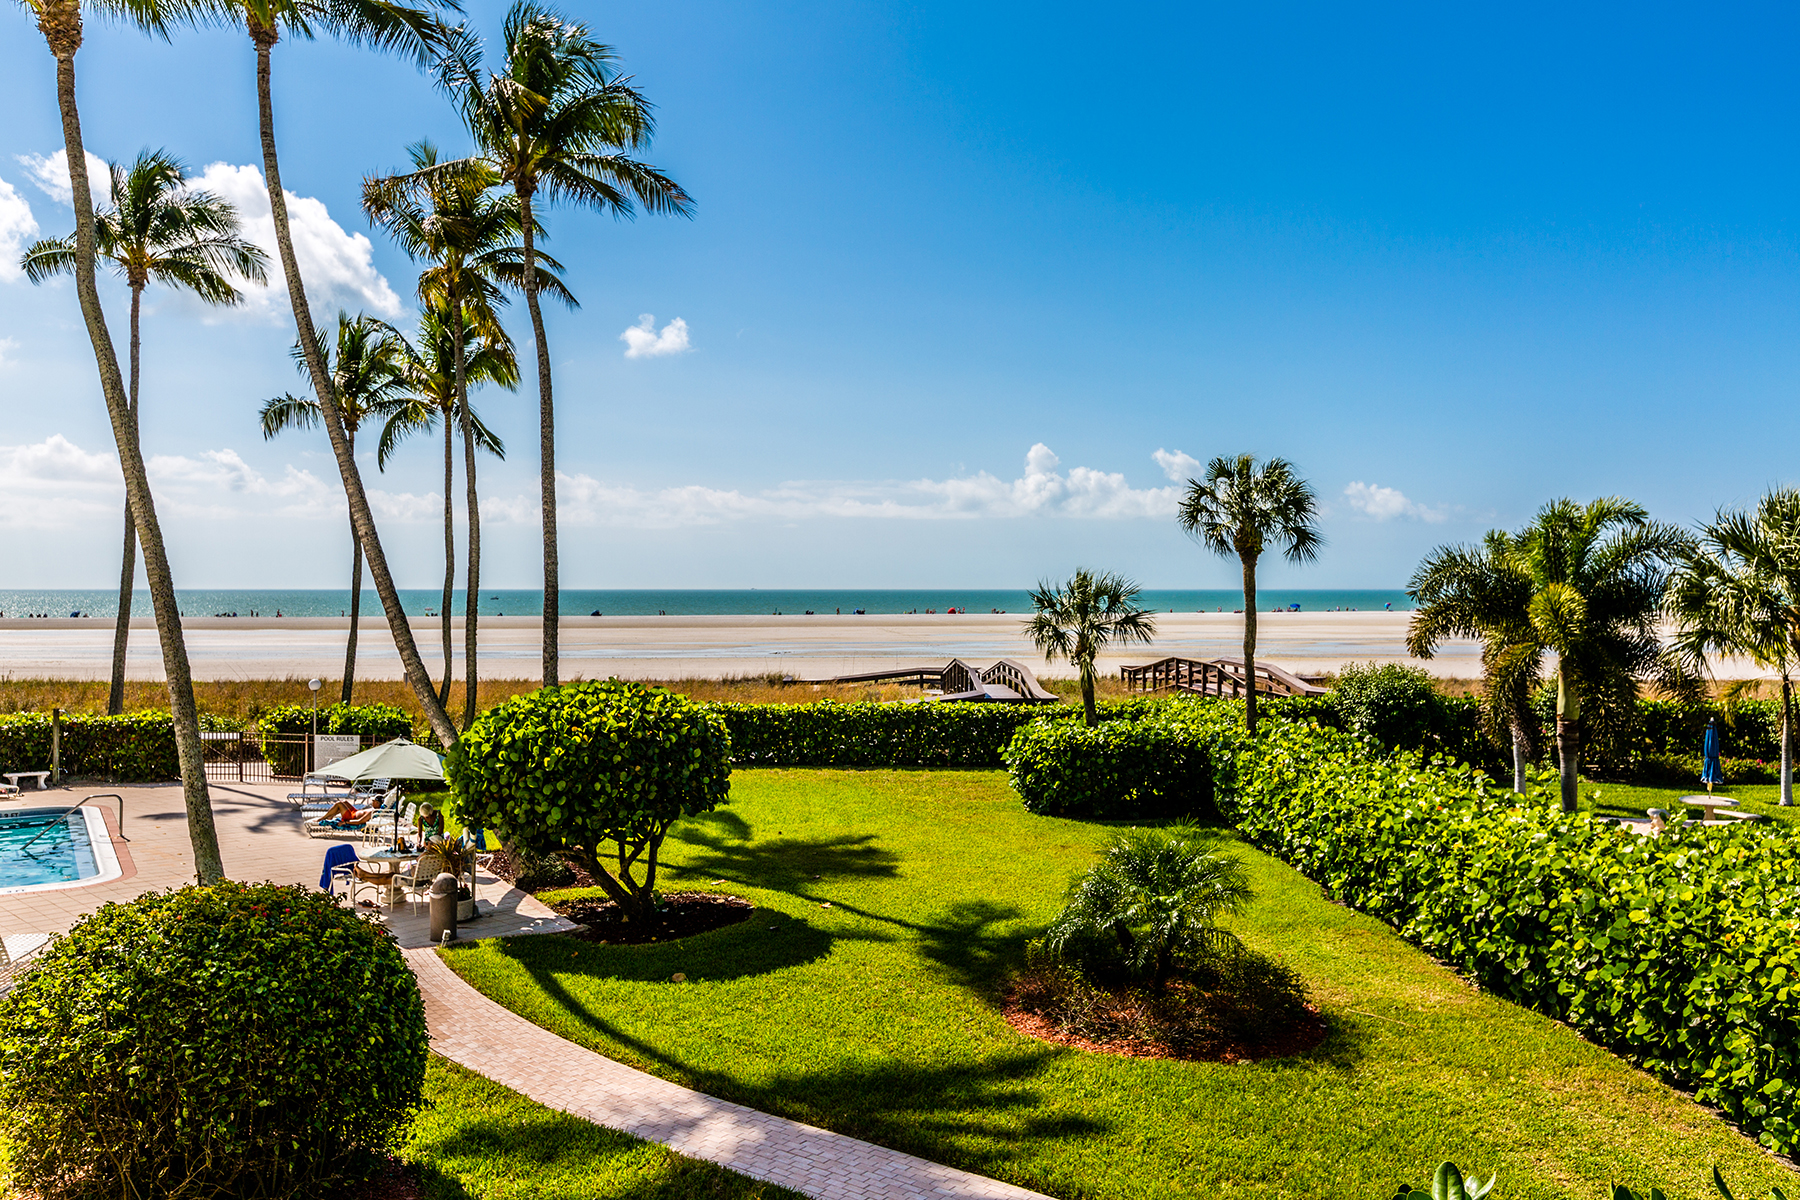 Condominium for Sale at MARCO ISLAND - EMERALD BEACH 500 Saturn Ct 026 Marco Island, Florida, 34145 United States